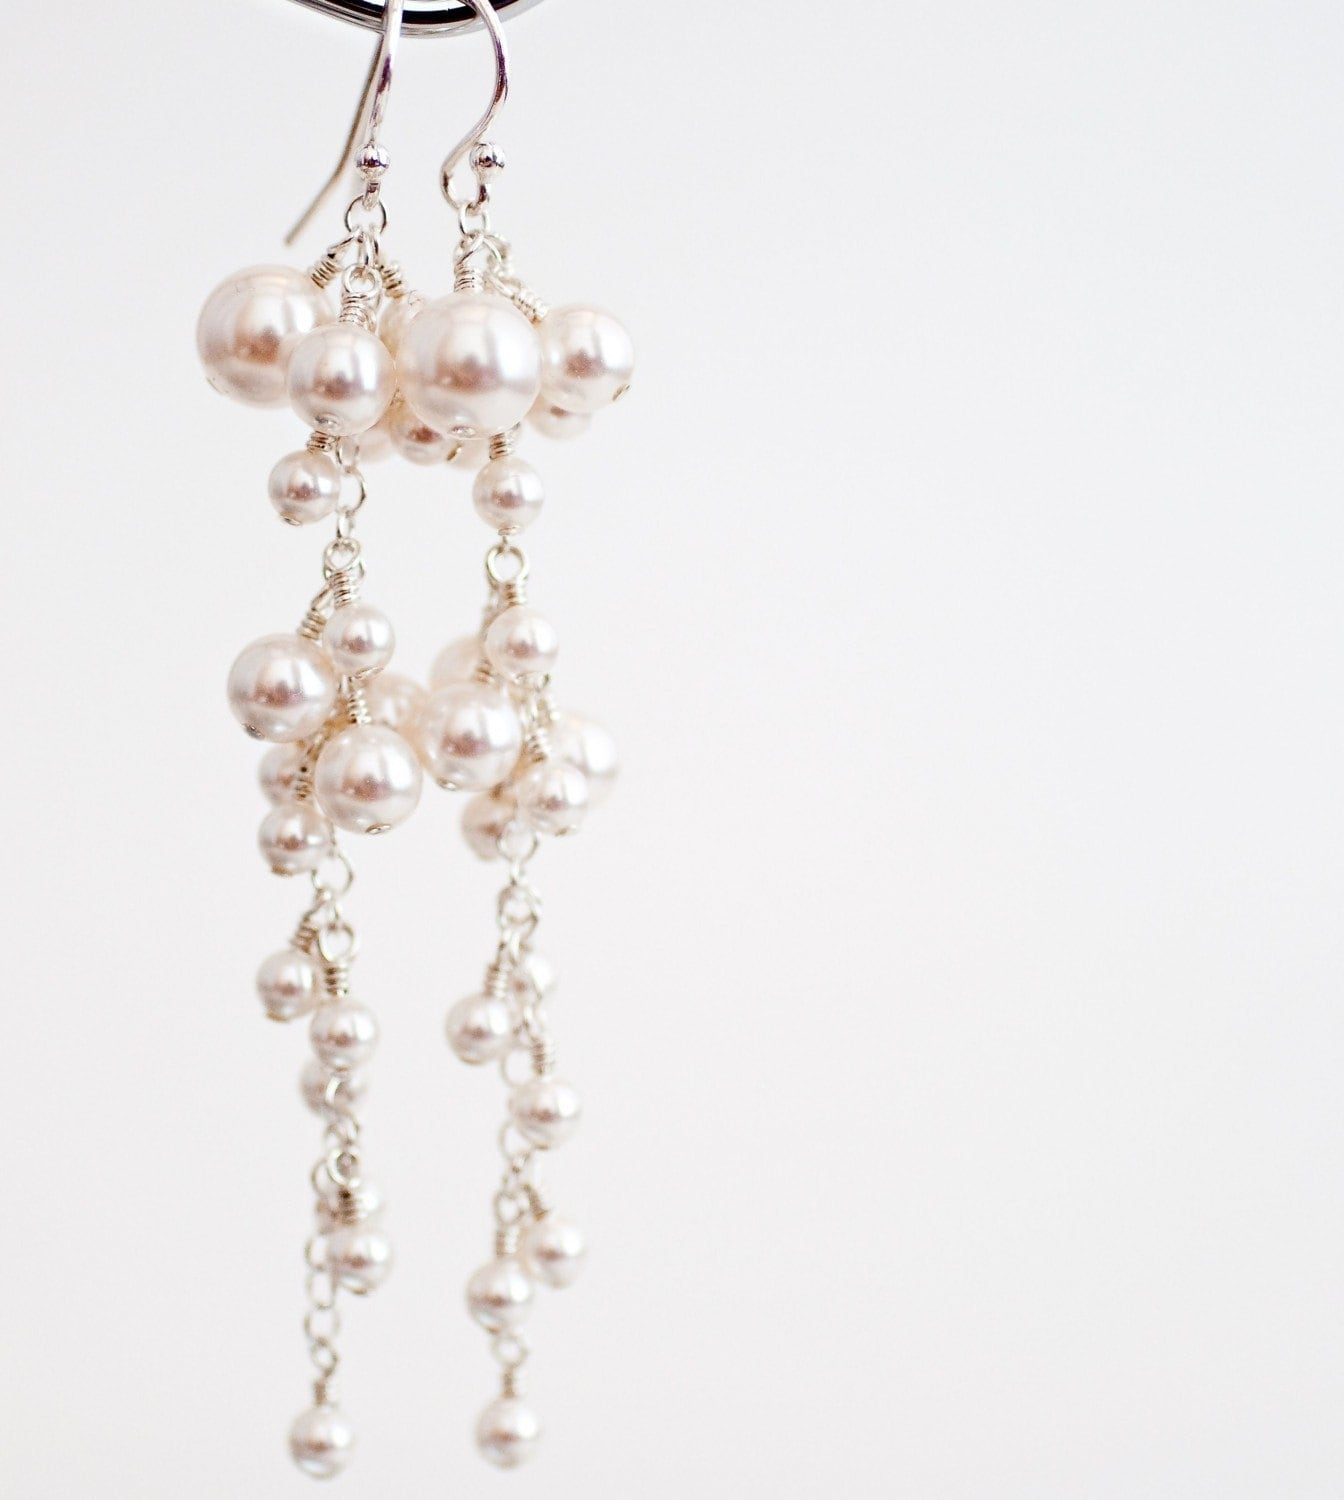 Earrings, Bridal Wedding. Elegant and Glamorous Long Drop Cluster Dangle Winter White Pearl and Sterling Silver Statement Beaded Glamour Custom Handmade Jewellery for the Bride or your Bridesmaids